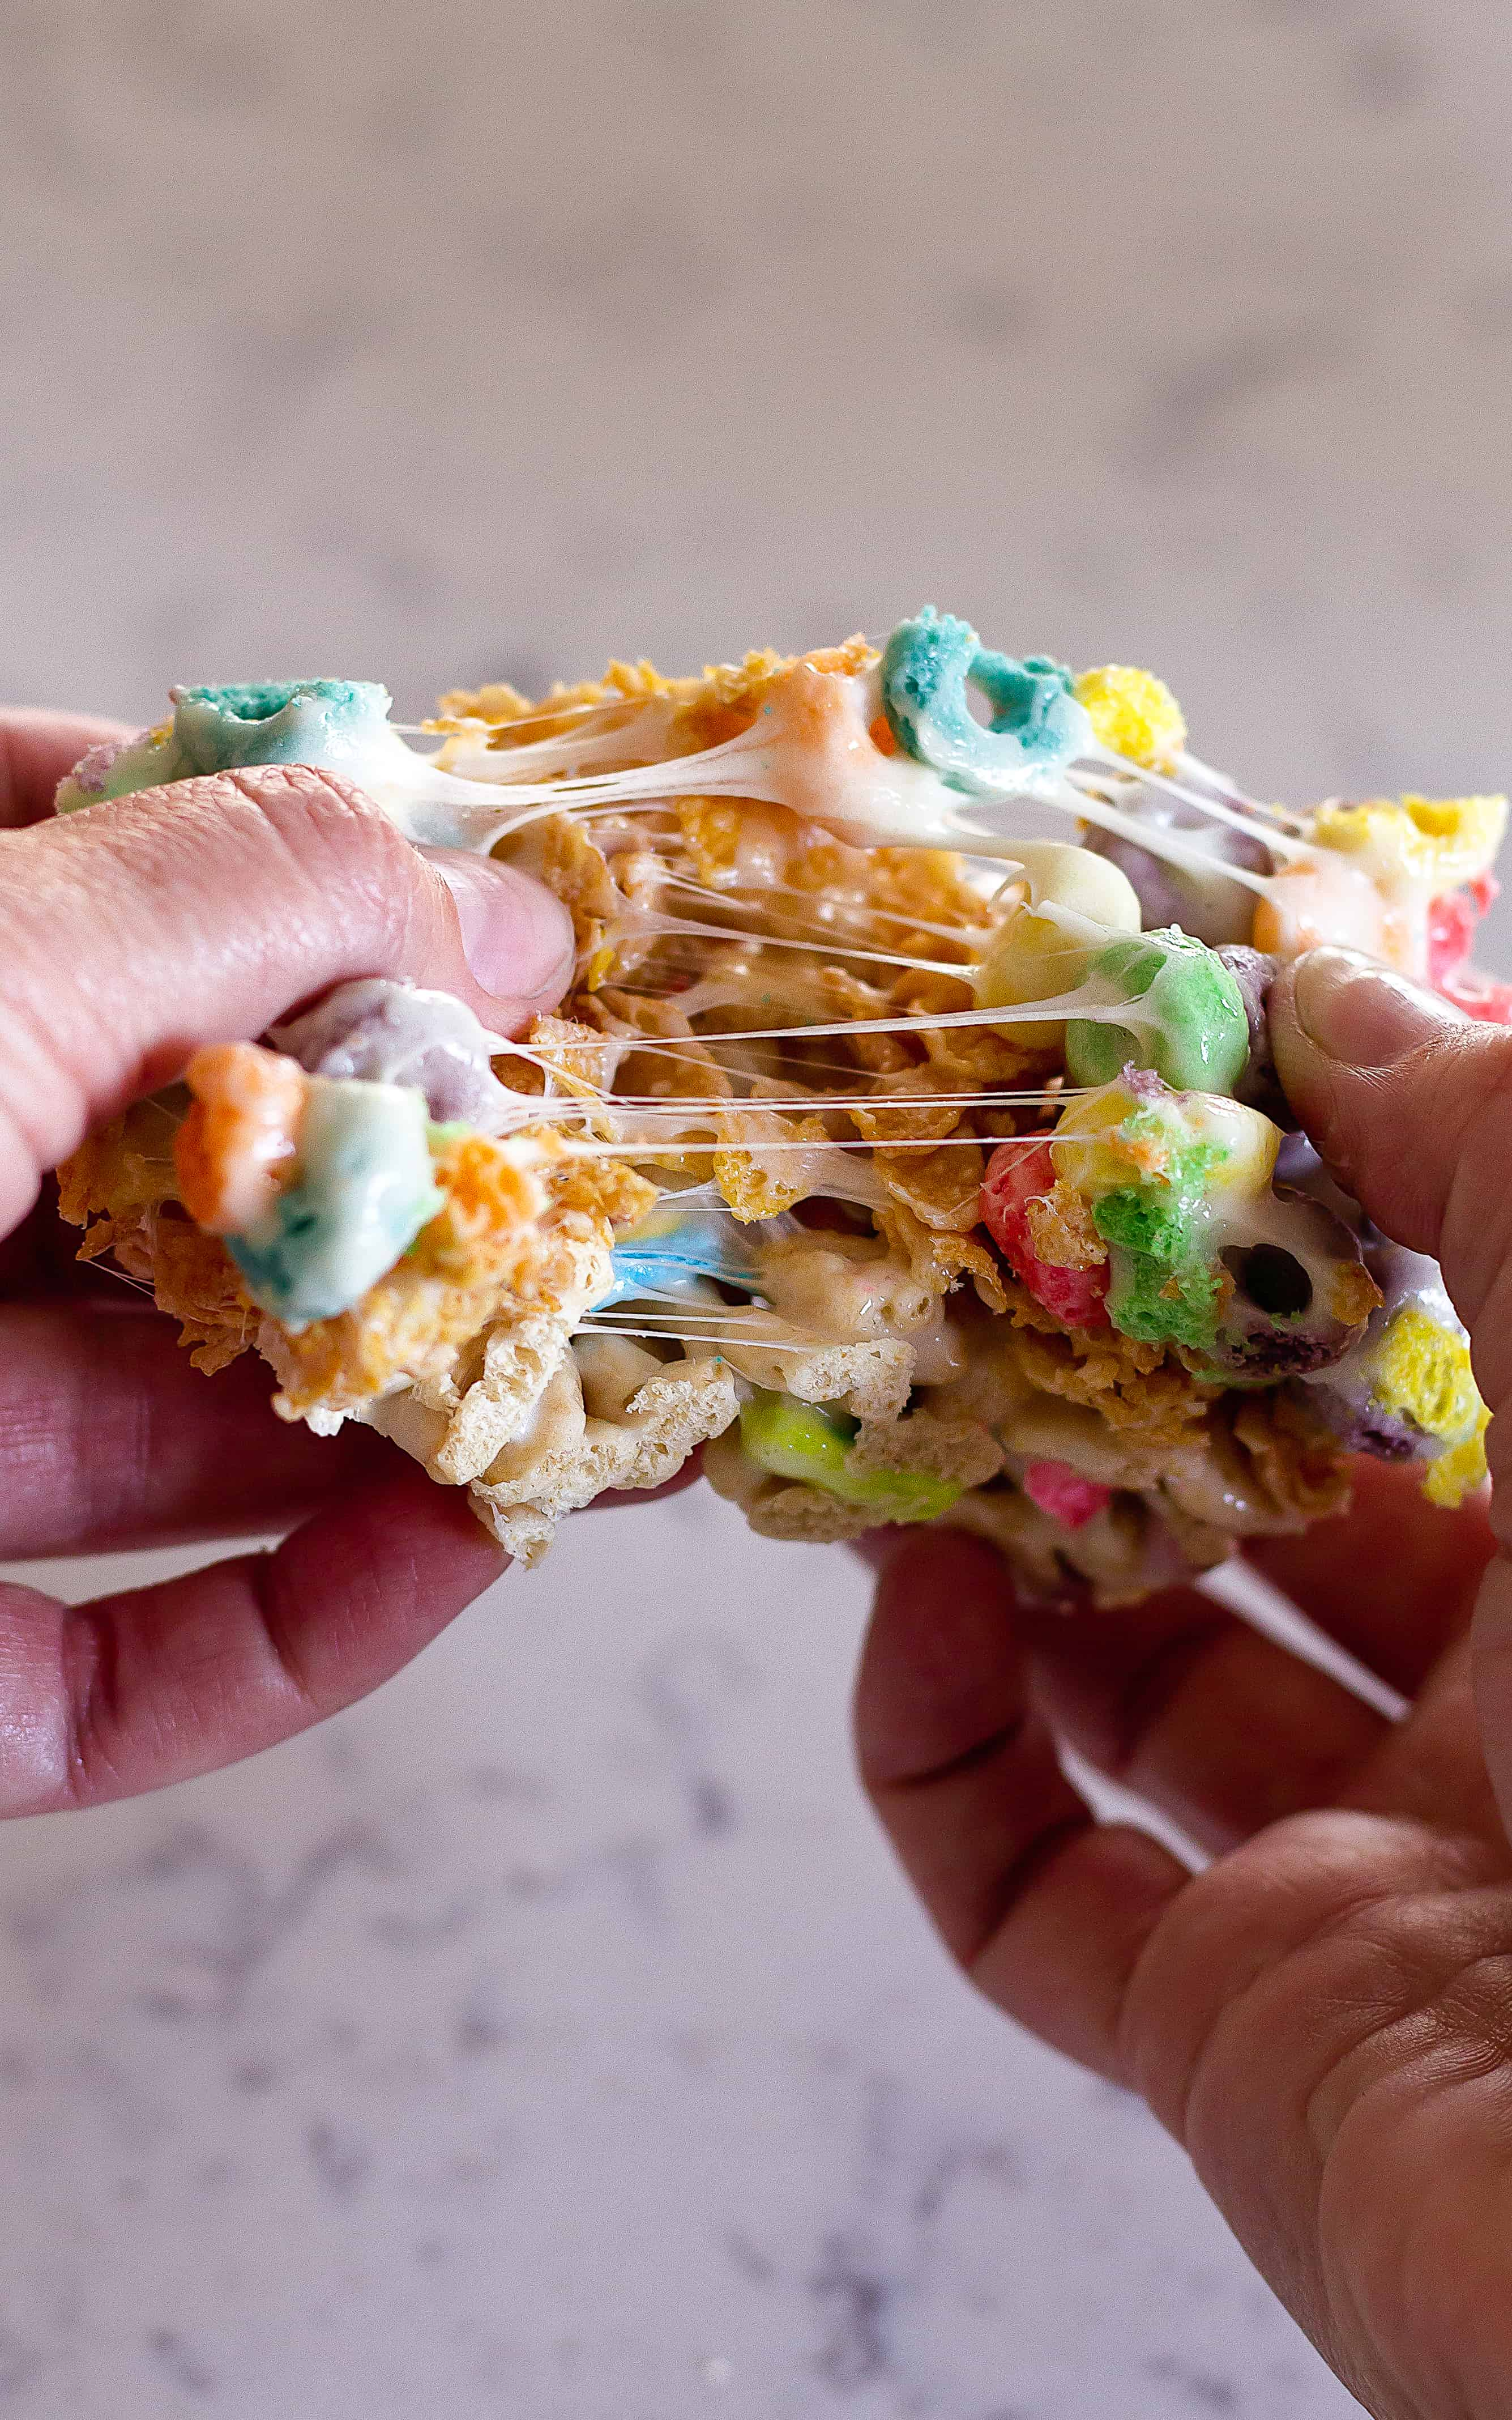 Check out the chewy marshmallow in my Layered Cereal Bars | Take Two Tapas | #CerealBars #KrispiesTreats #FruitLoops #FrostedFlakes #LuckyCharms #CerealRecipes #KidsTreats #AfterSchoolSnacks